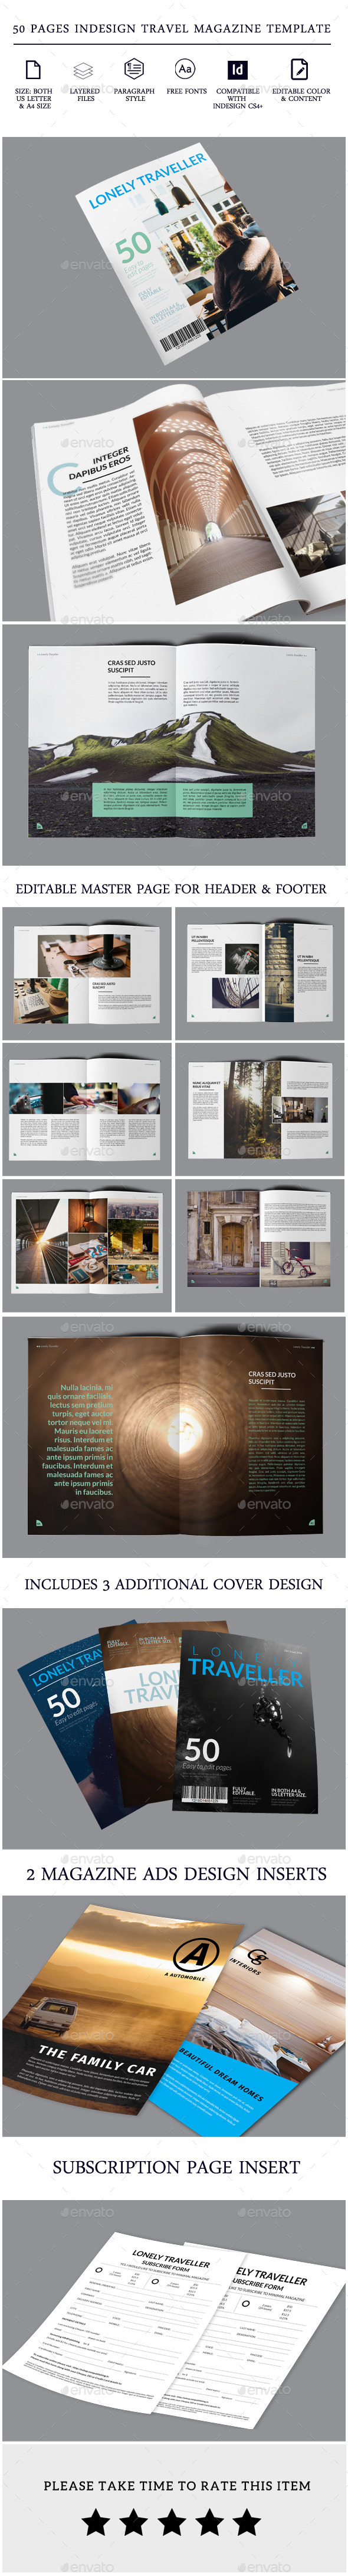 Travel Magazine -50 pages Indesign Template - Magazines Print Templates